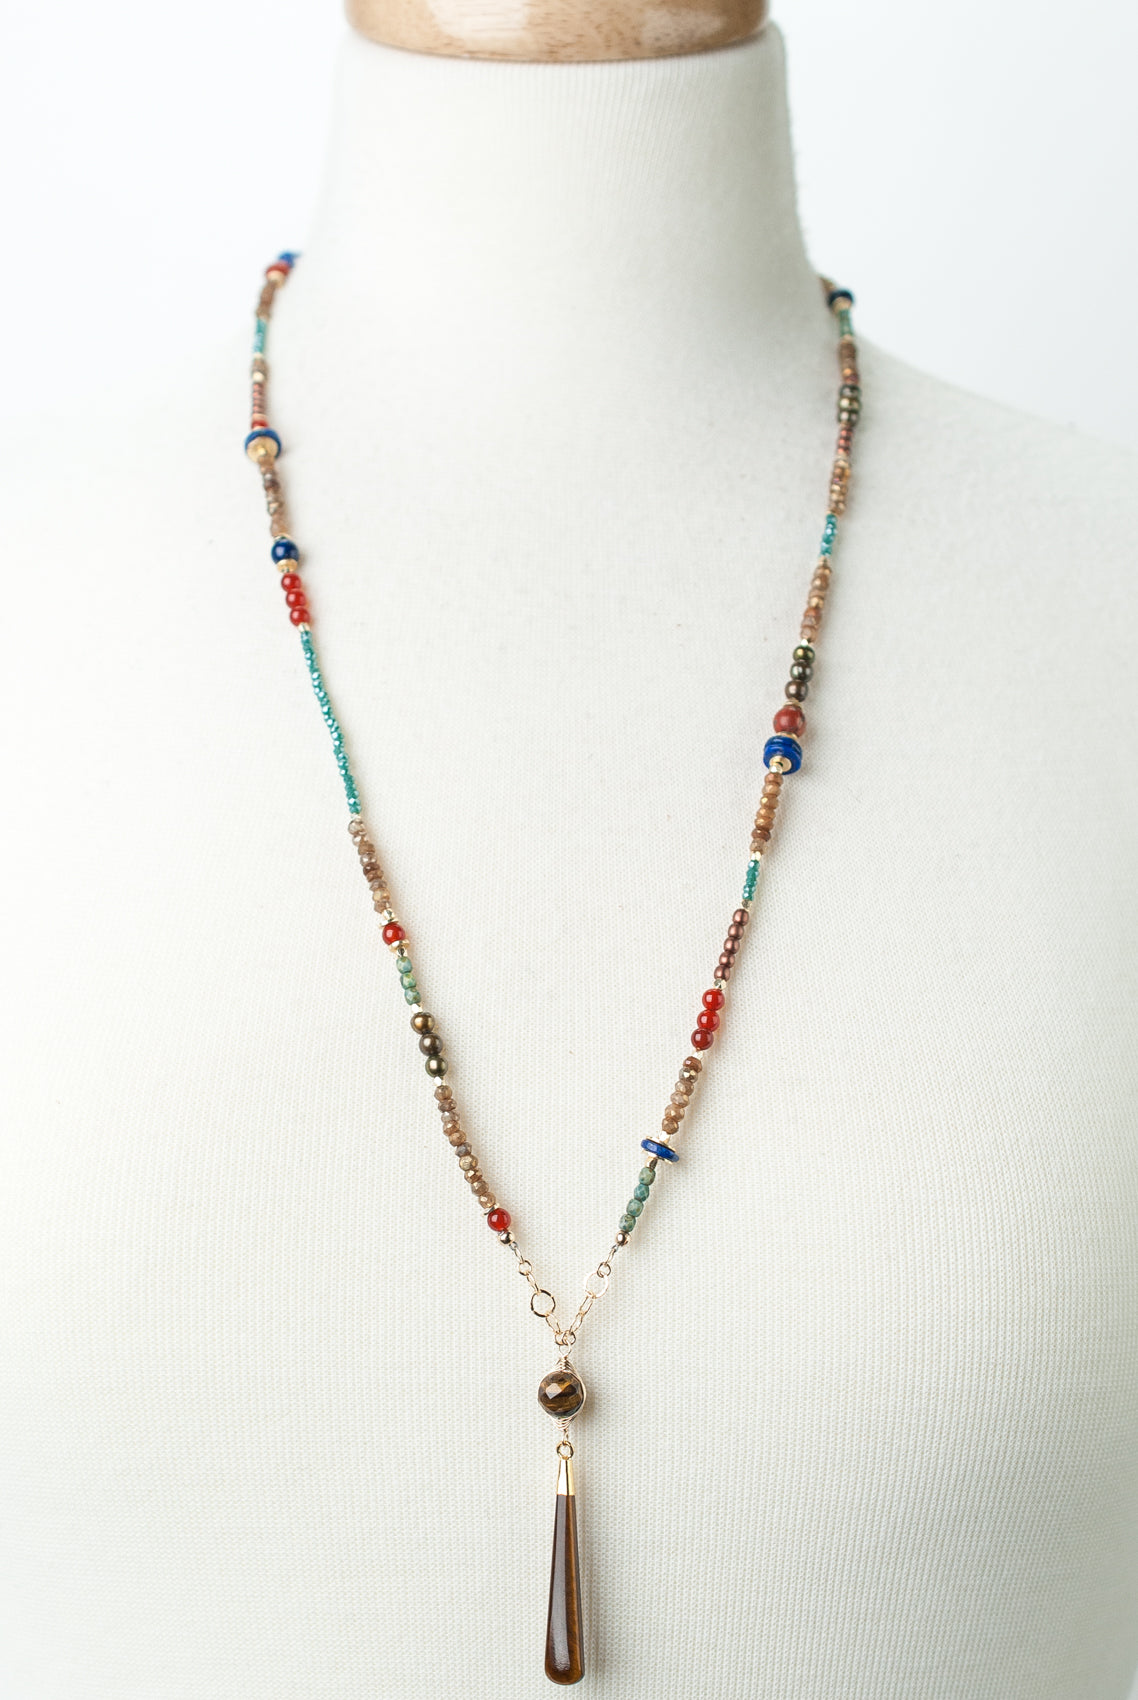 "Intrigue 28.5-30.5"" Diamond Finish Quartz, Lapis, Jasper, Tiger's Eye Collage Focal Necklace"